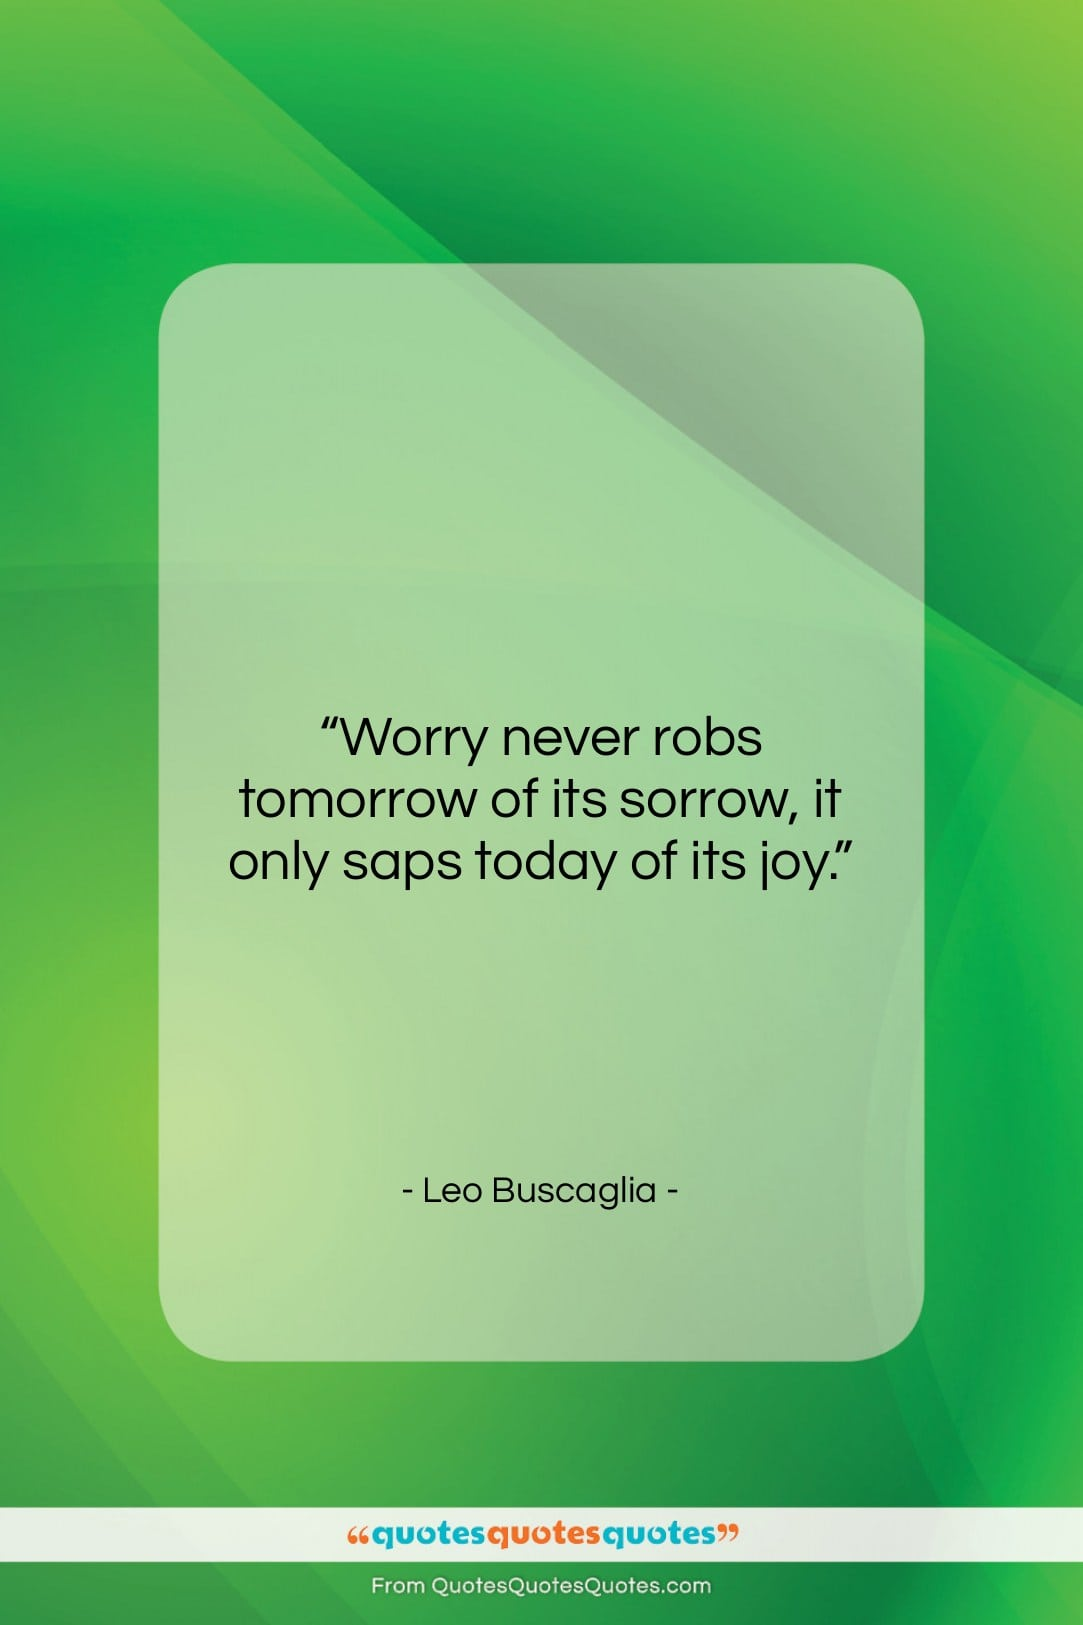 """Leo Buscaglia quote: """"Worry never robs tomorrow of its sorrow,…""""- at QuotesQuotesQuotes.com"""